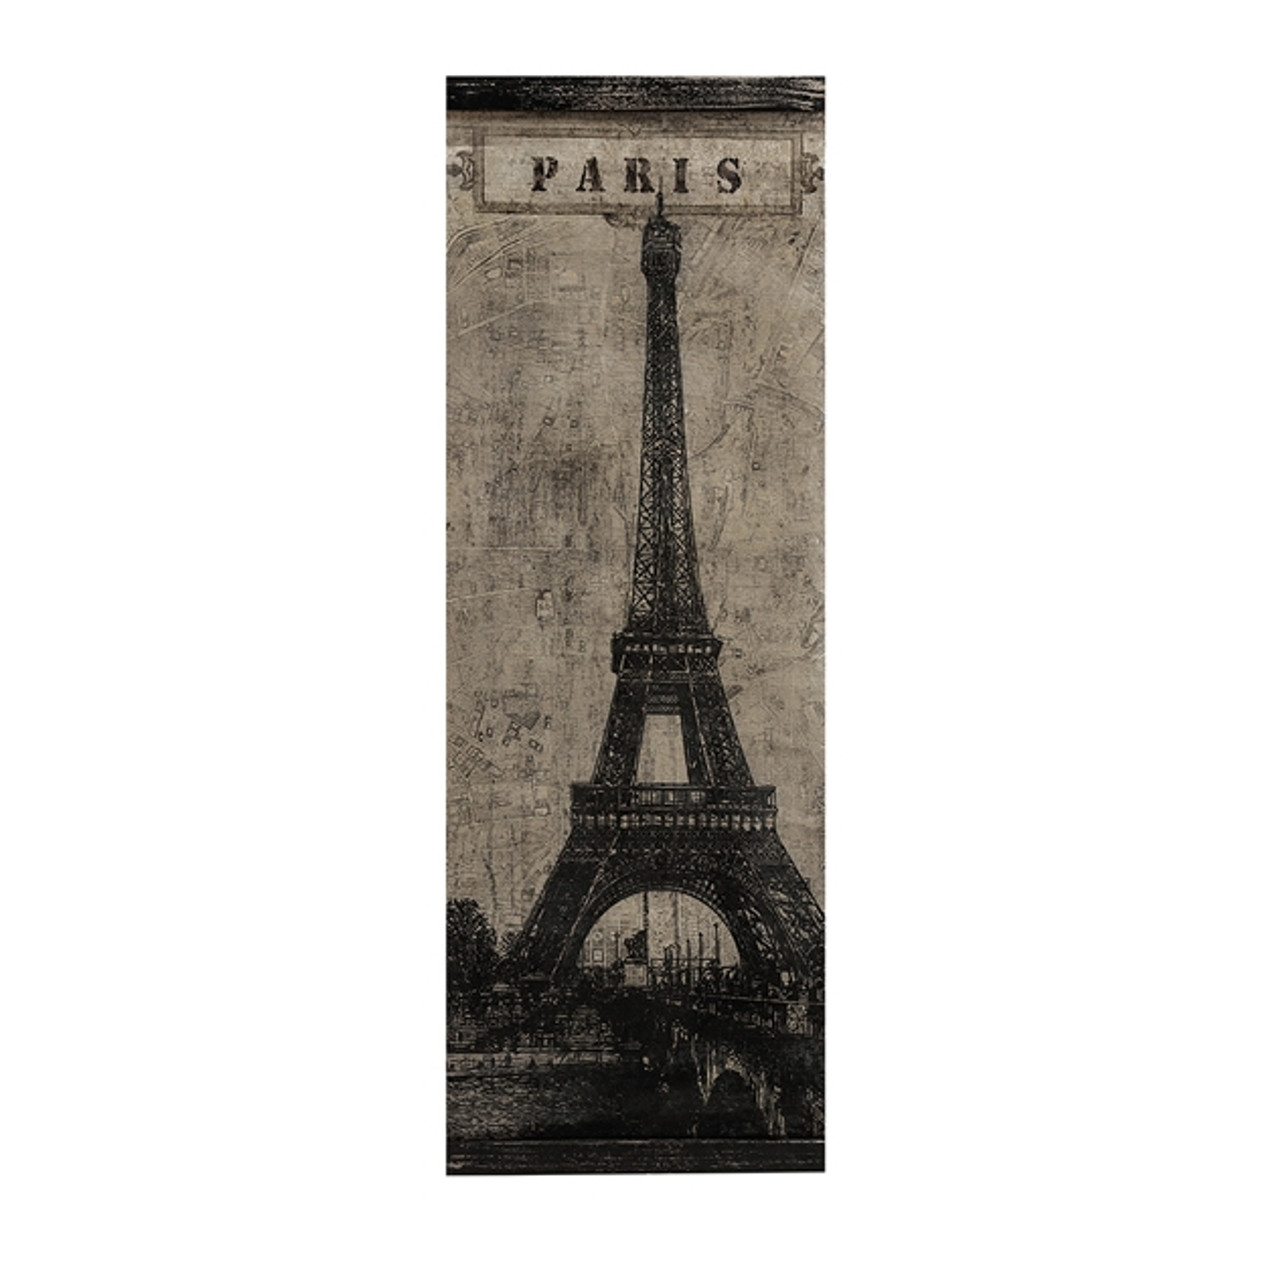 48 city of paris shades of black fabric and fir wood eiffel tower wall art decor 31451921